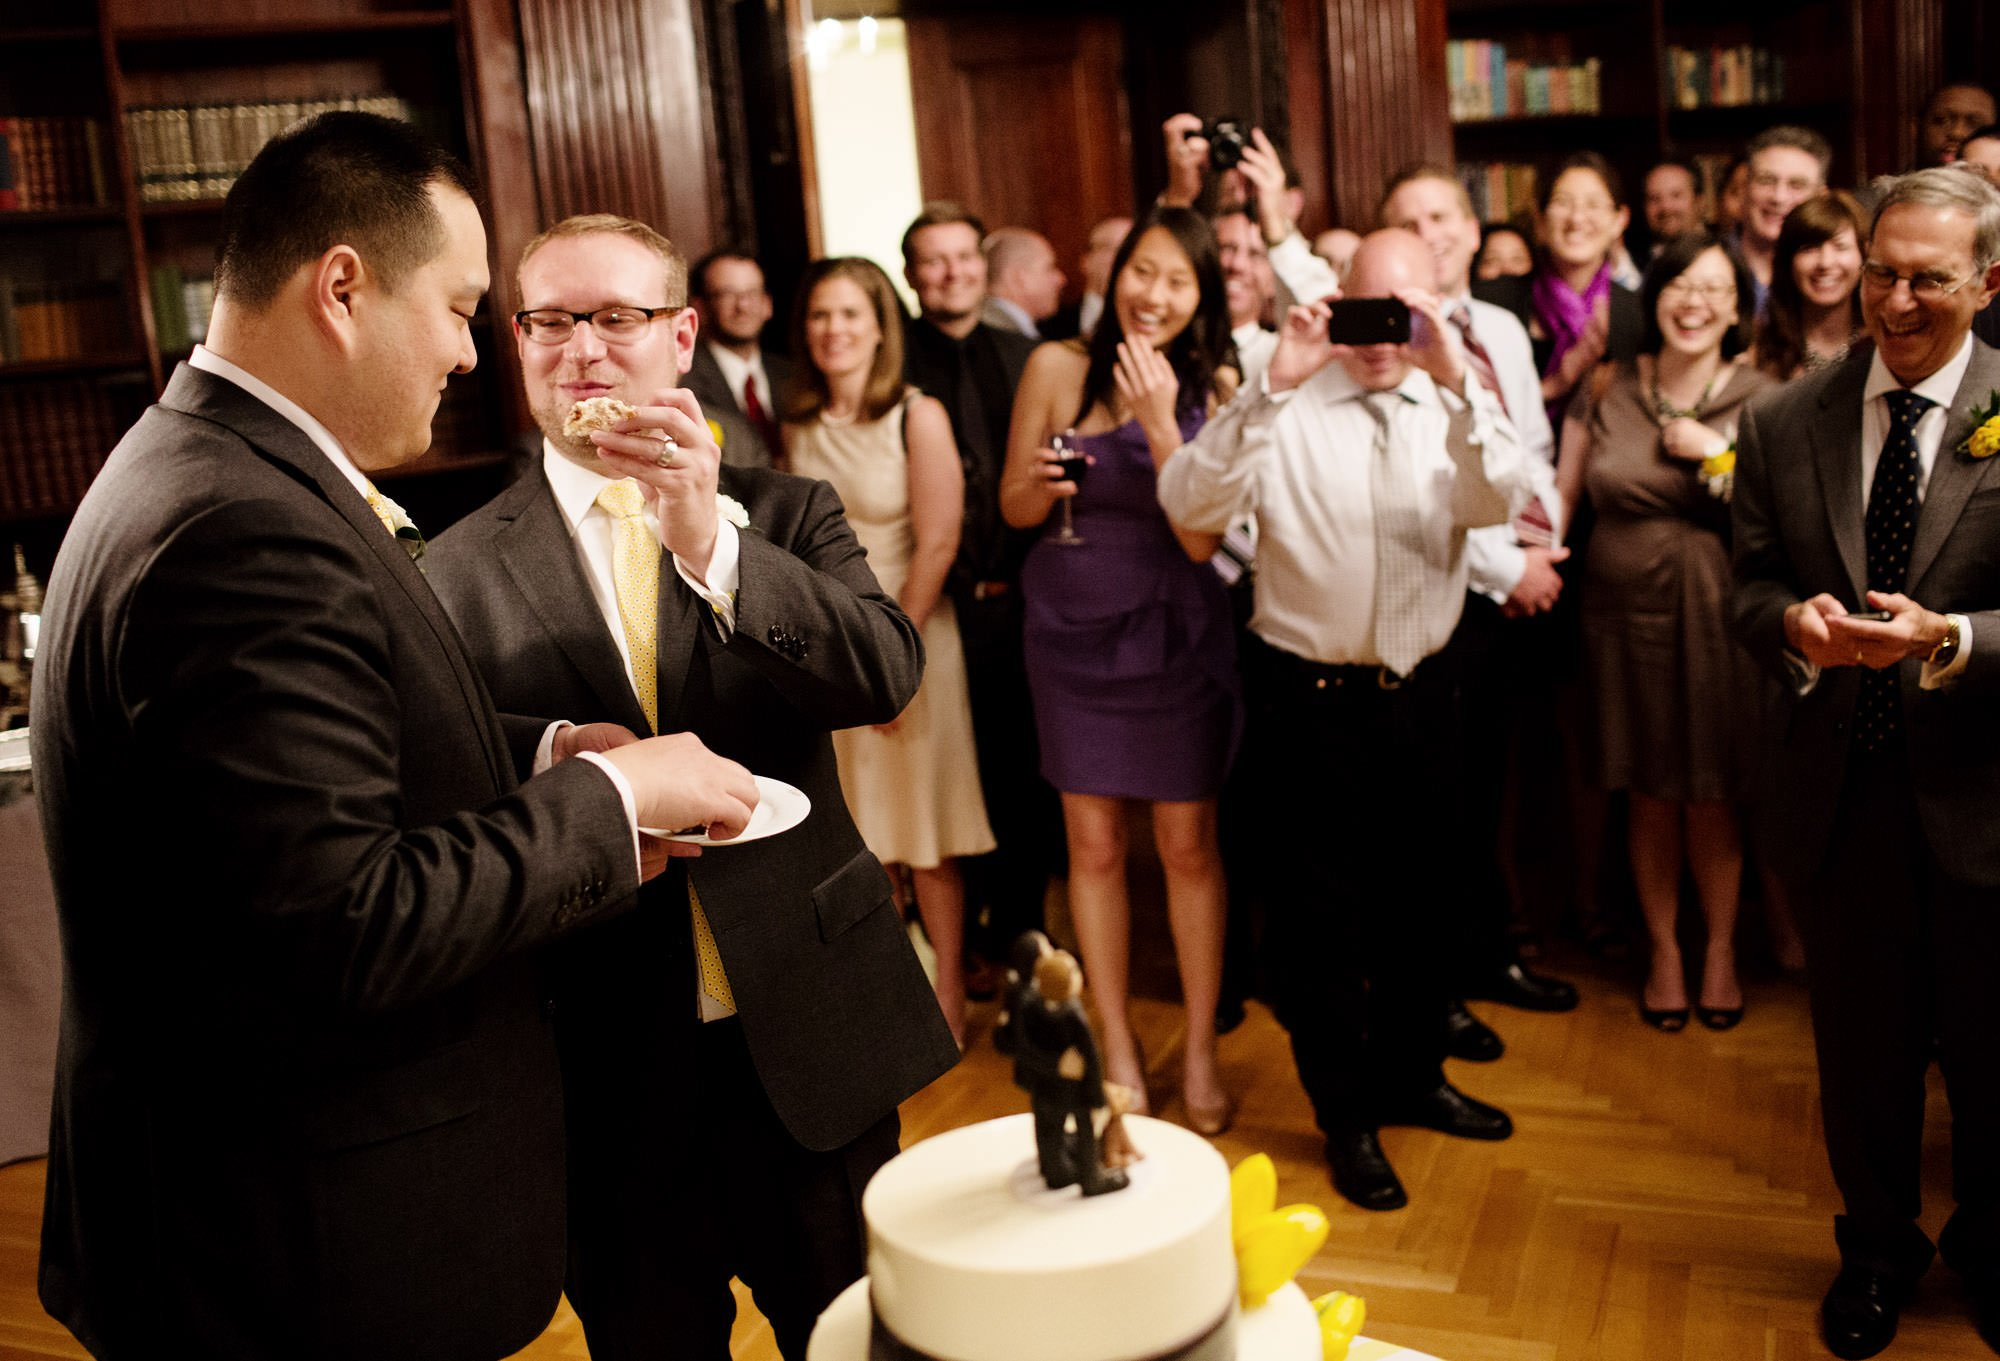 The grooms cut their wedding cake as guests look on during their reception at Oxon Hill Manor.